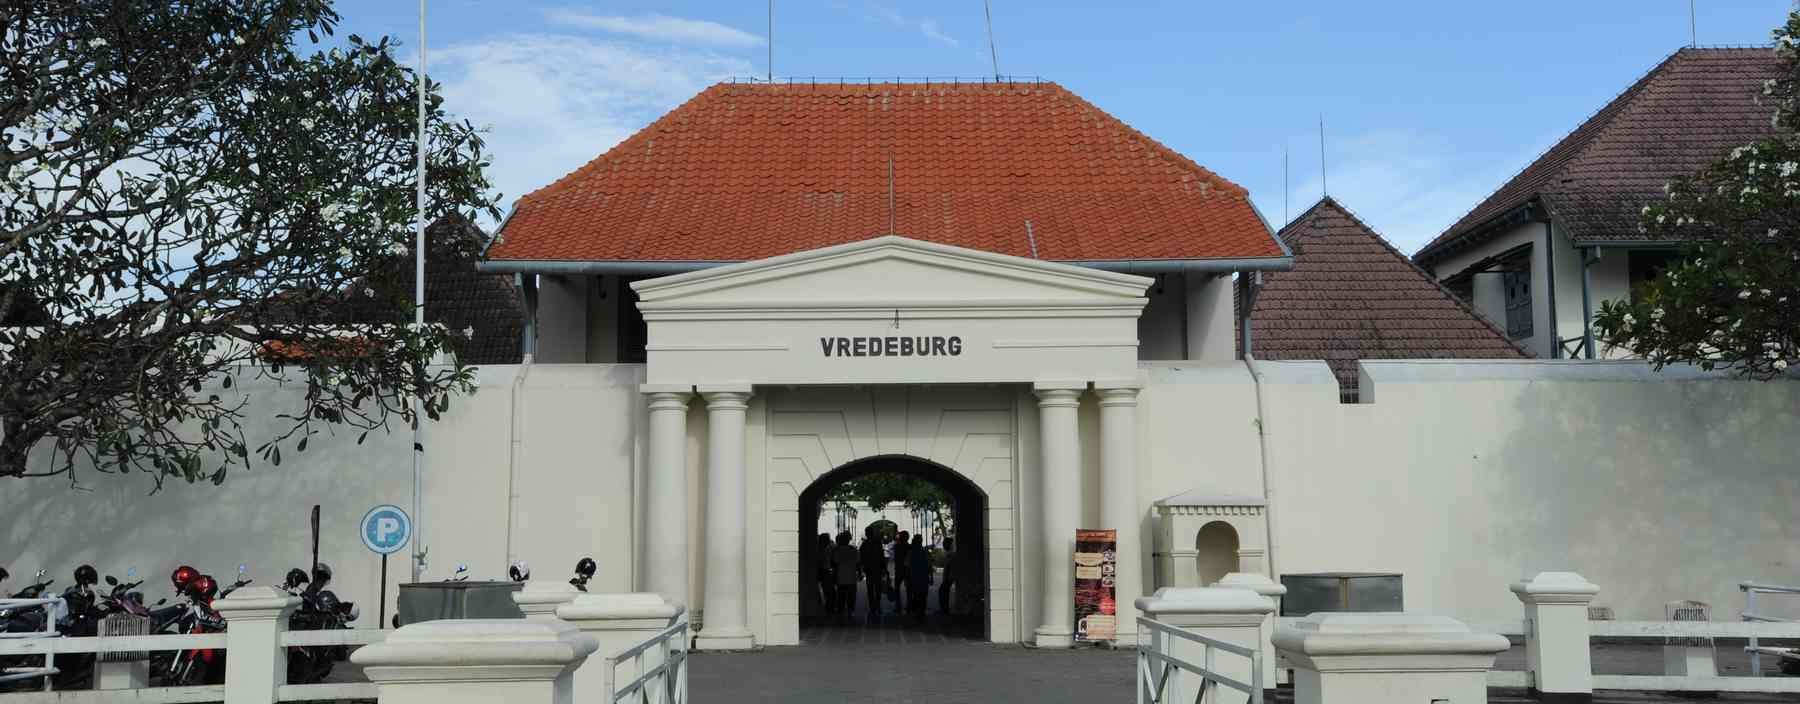 id, java, dutch fortress of vredeburg at jogjakarta.jpg